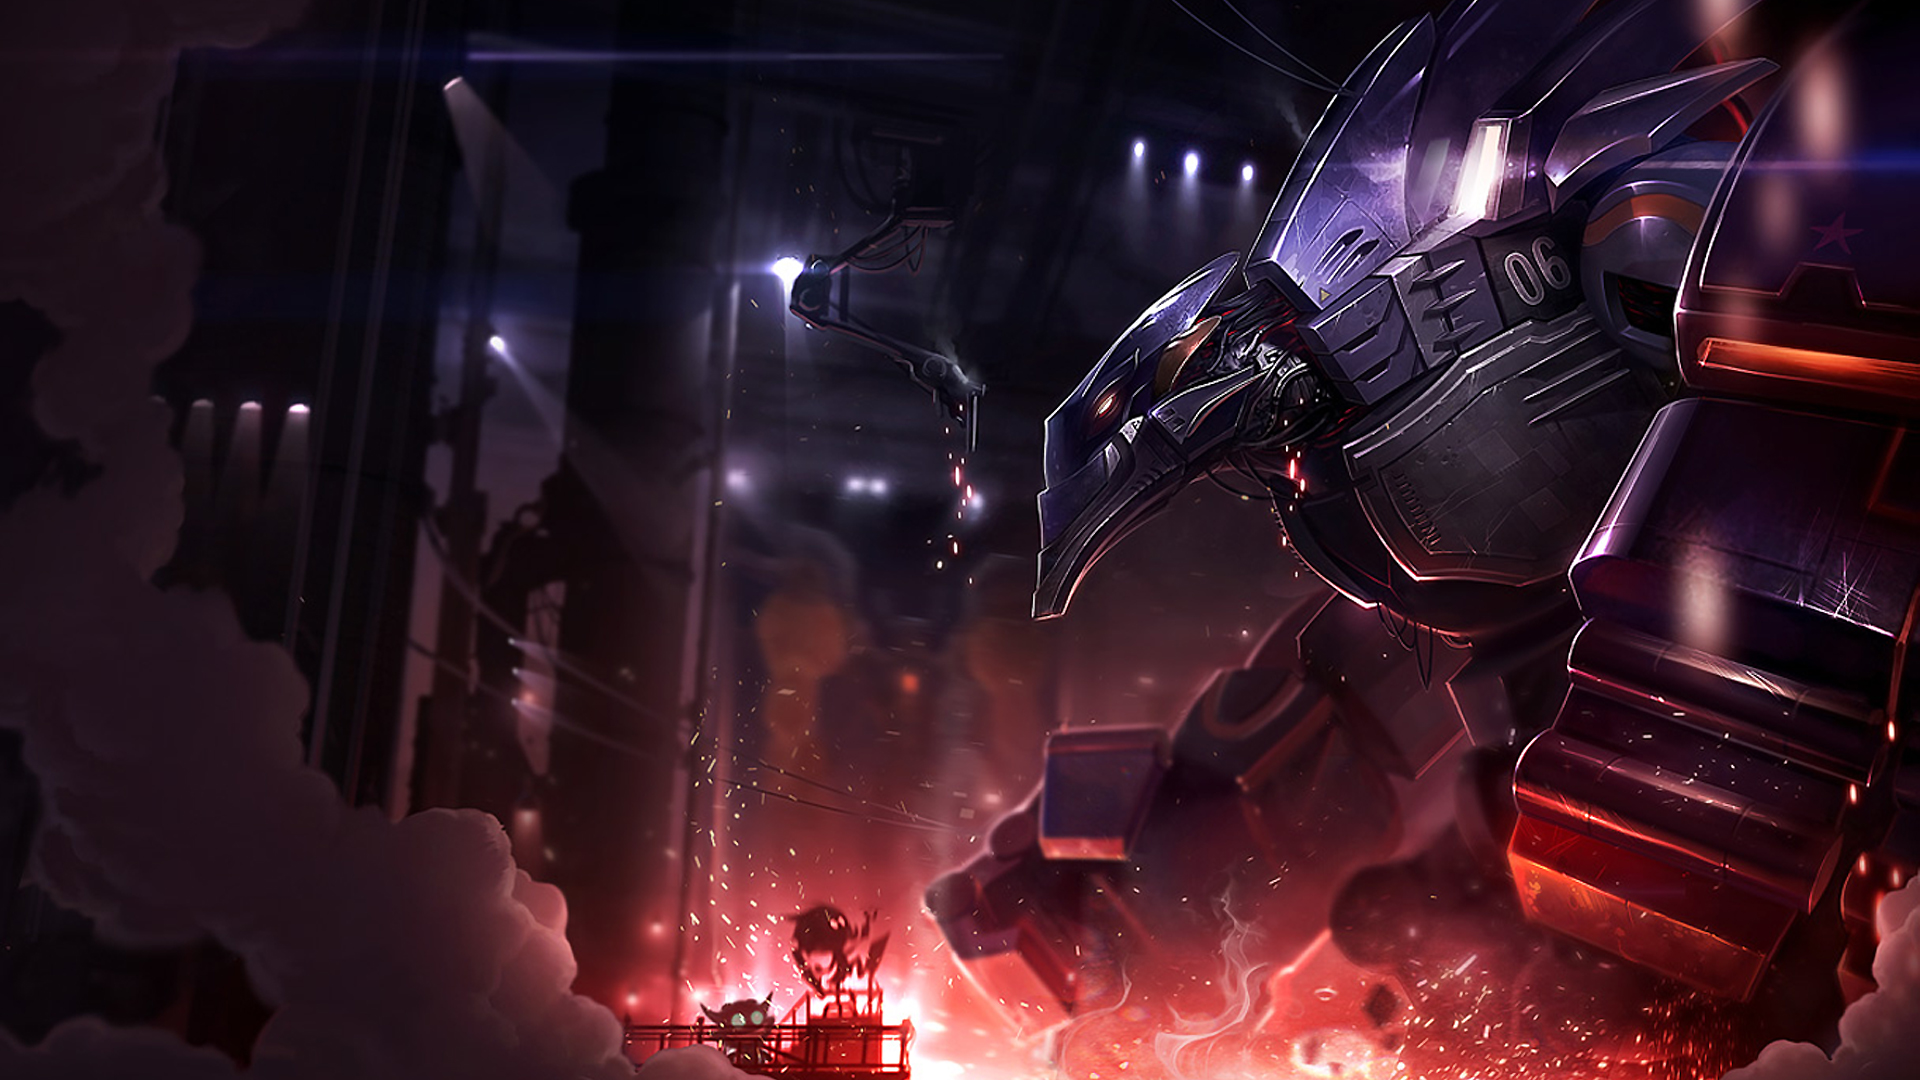 Mecha Malphite Wallpaper HD